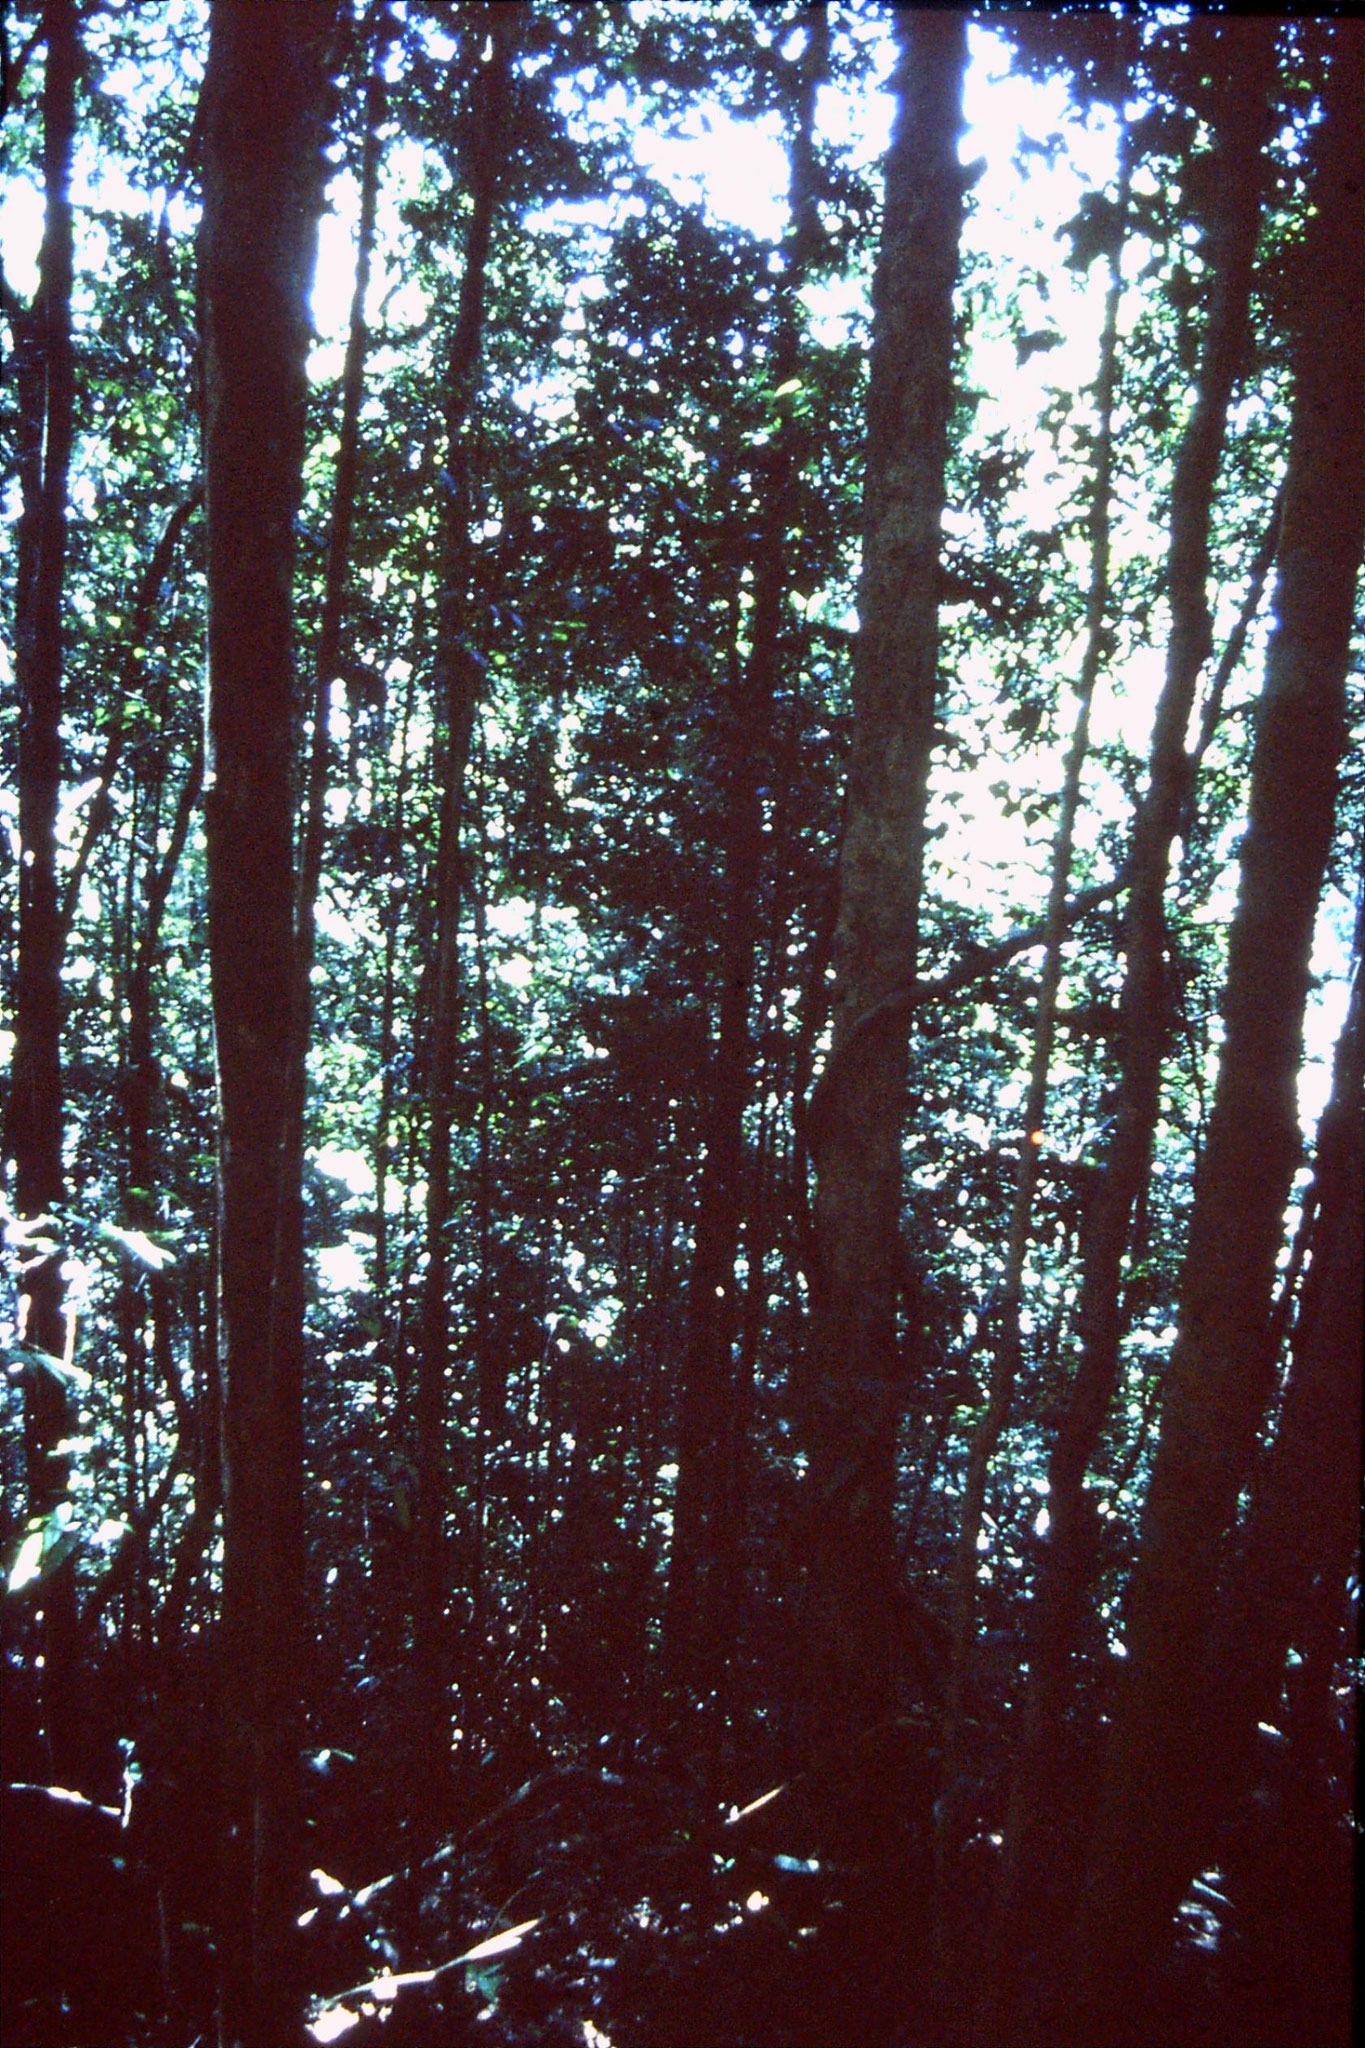 30/1/1990: 9: Sinharaja forest